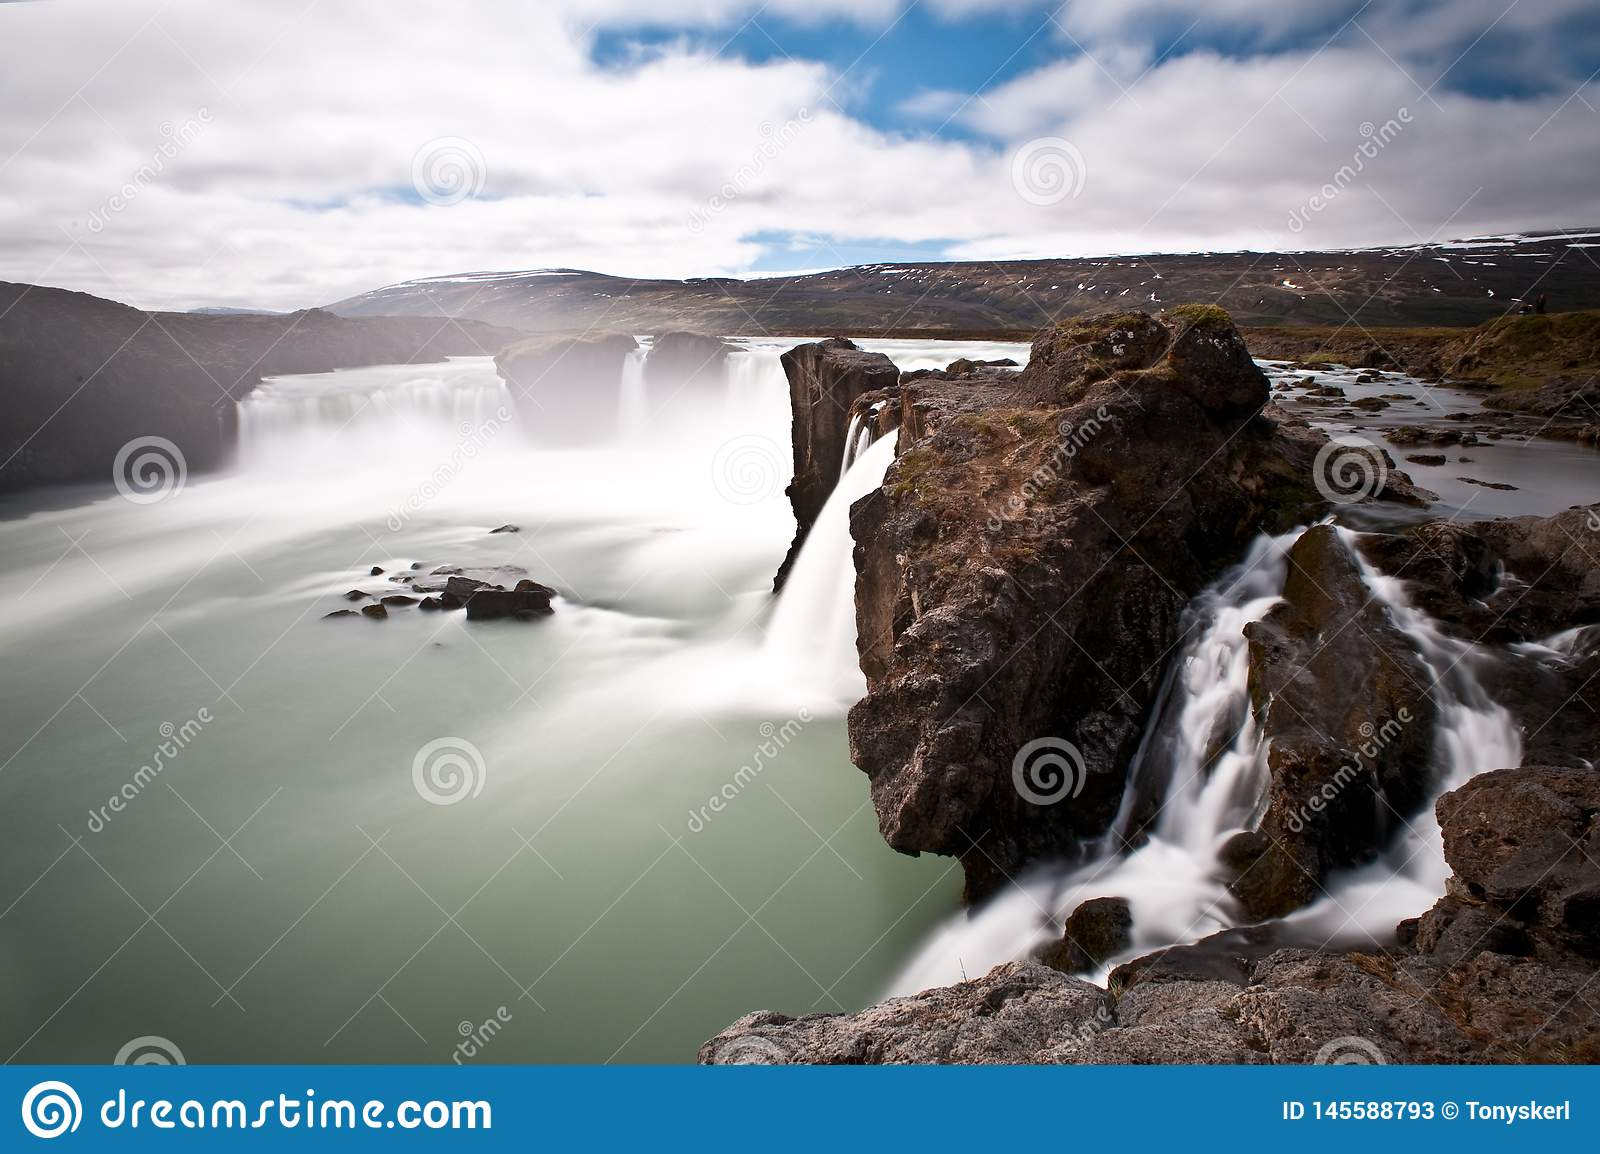 Dramatic long exposure image of Godafoss waterfall,Iceland,Europe